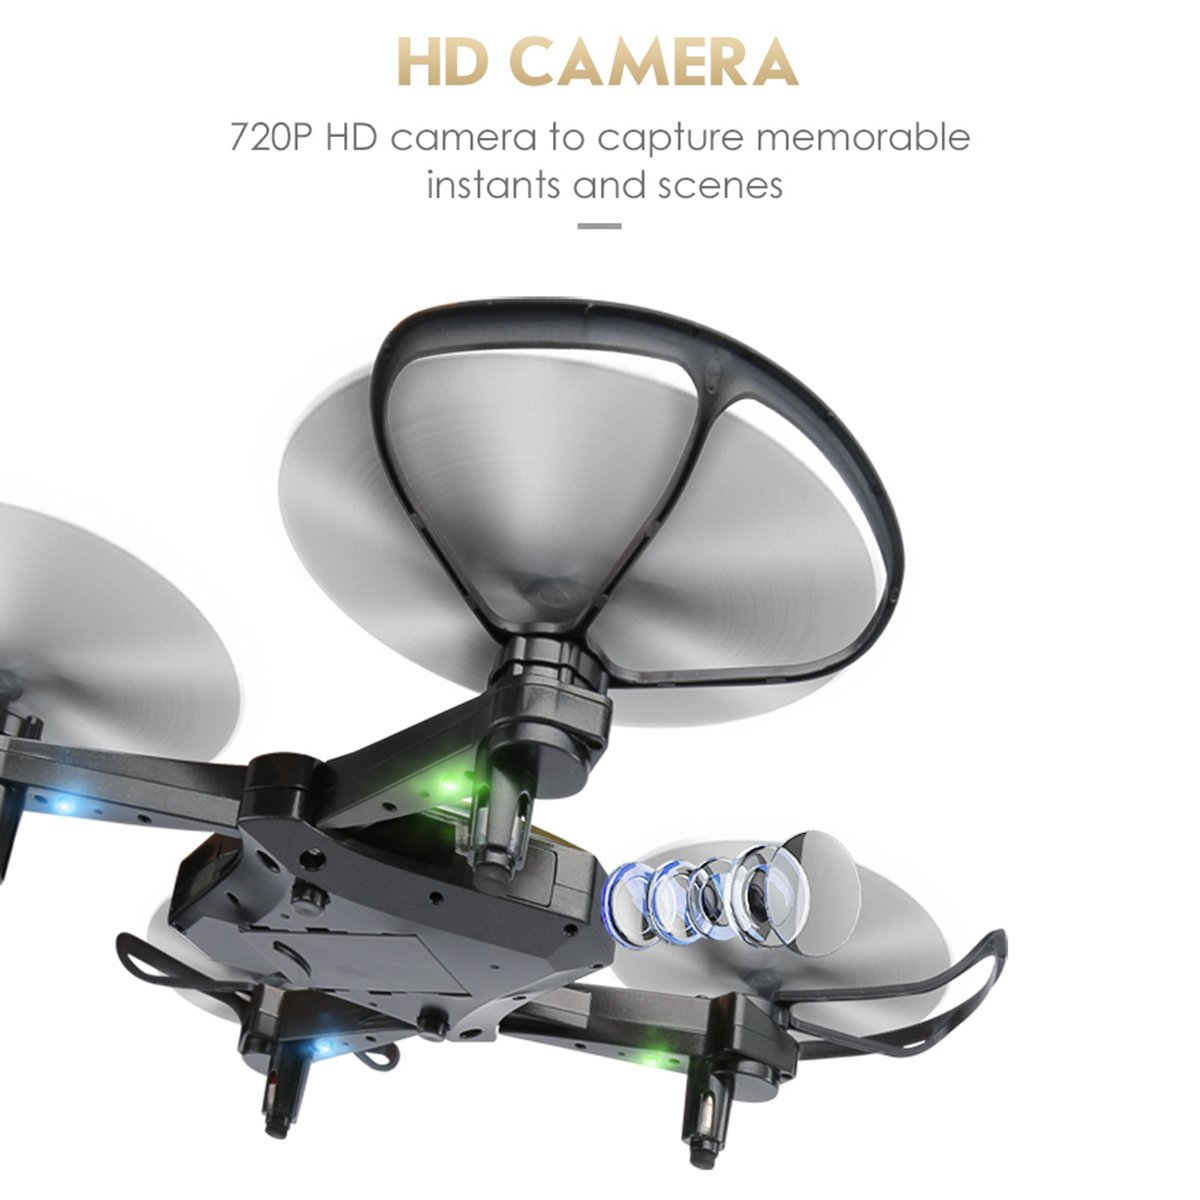 Lontect JJRC H44WH Diaman FPV RC Drone Foldable with 720P HD Wi-Fi Camera Live Video Feed 4CH 2.4GHz 6-Axis Gyro Quadcopter for Kids /& Beginners Black